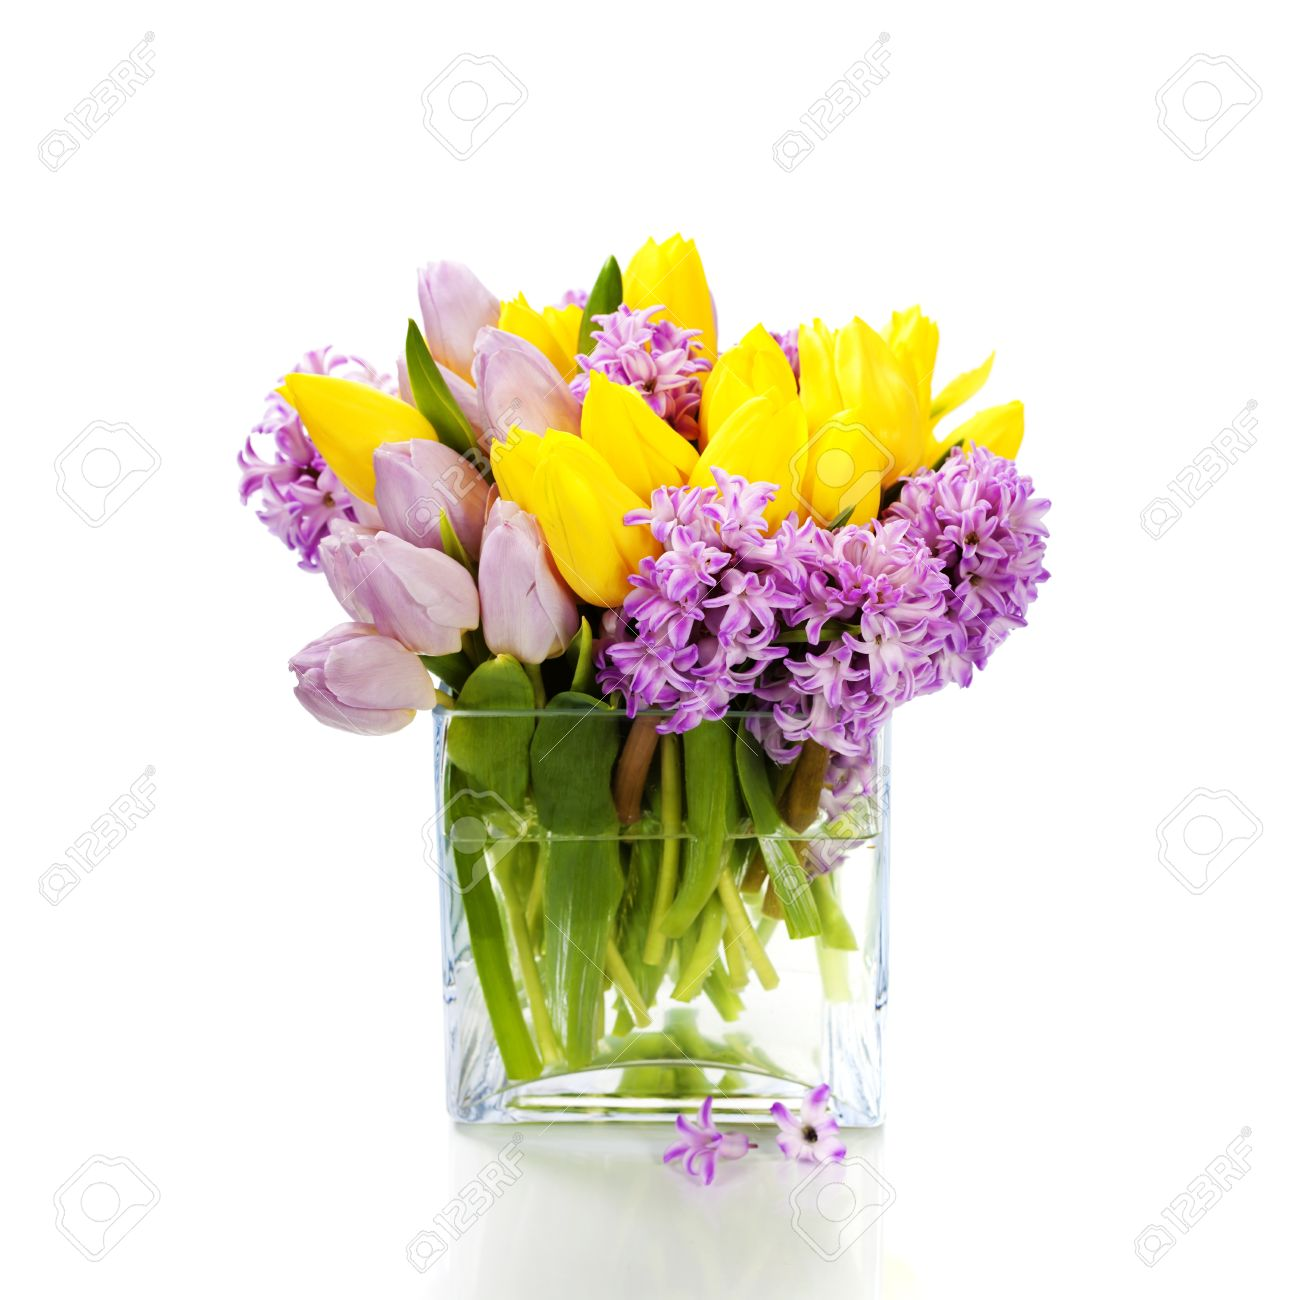 Beautiful Spring Flowers In Vase Over White Stock Photo Picture And